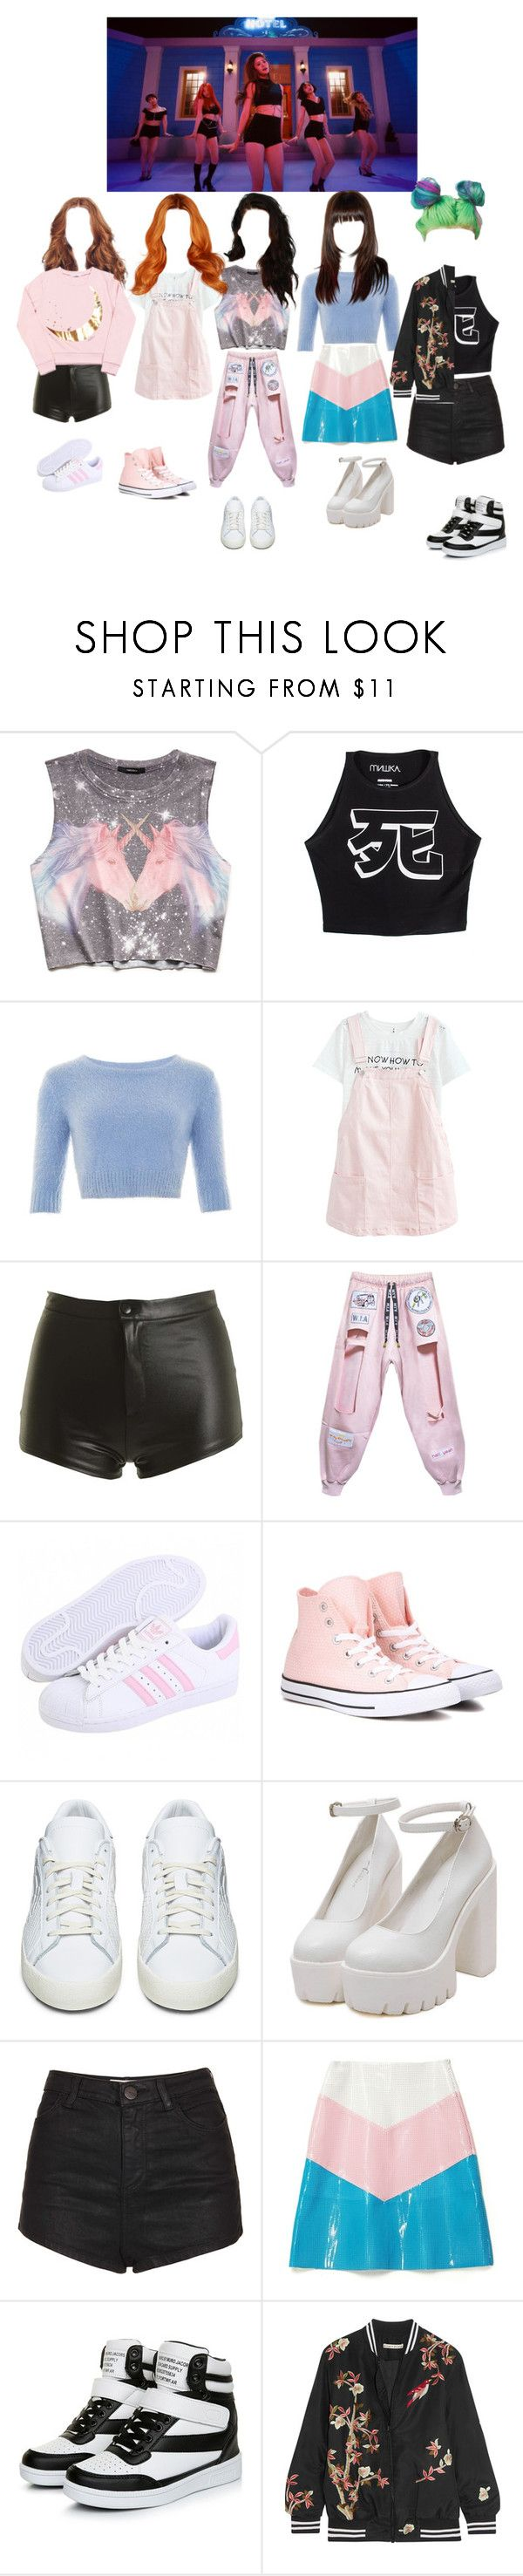 """""""Touch -  TOXIC GIRLS   DANCE  # 2"""" by official-toxicgrils ❤ liked on Polyvore featuring Forever 21, Mishka, Collectif, Converse, adidas Originals, Topshop and Alice + Olivia"""